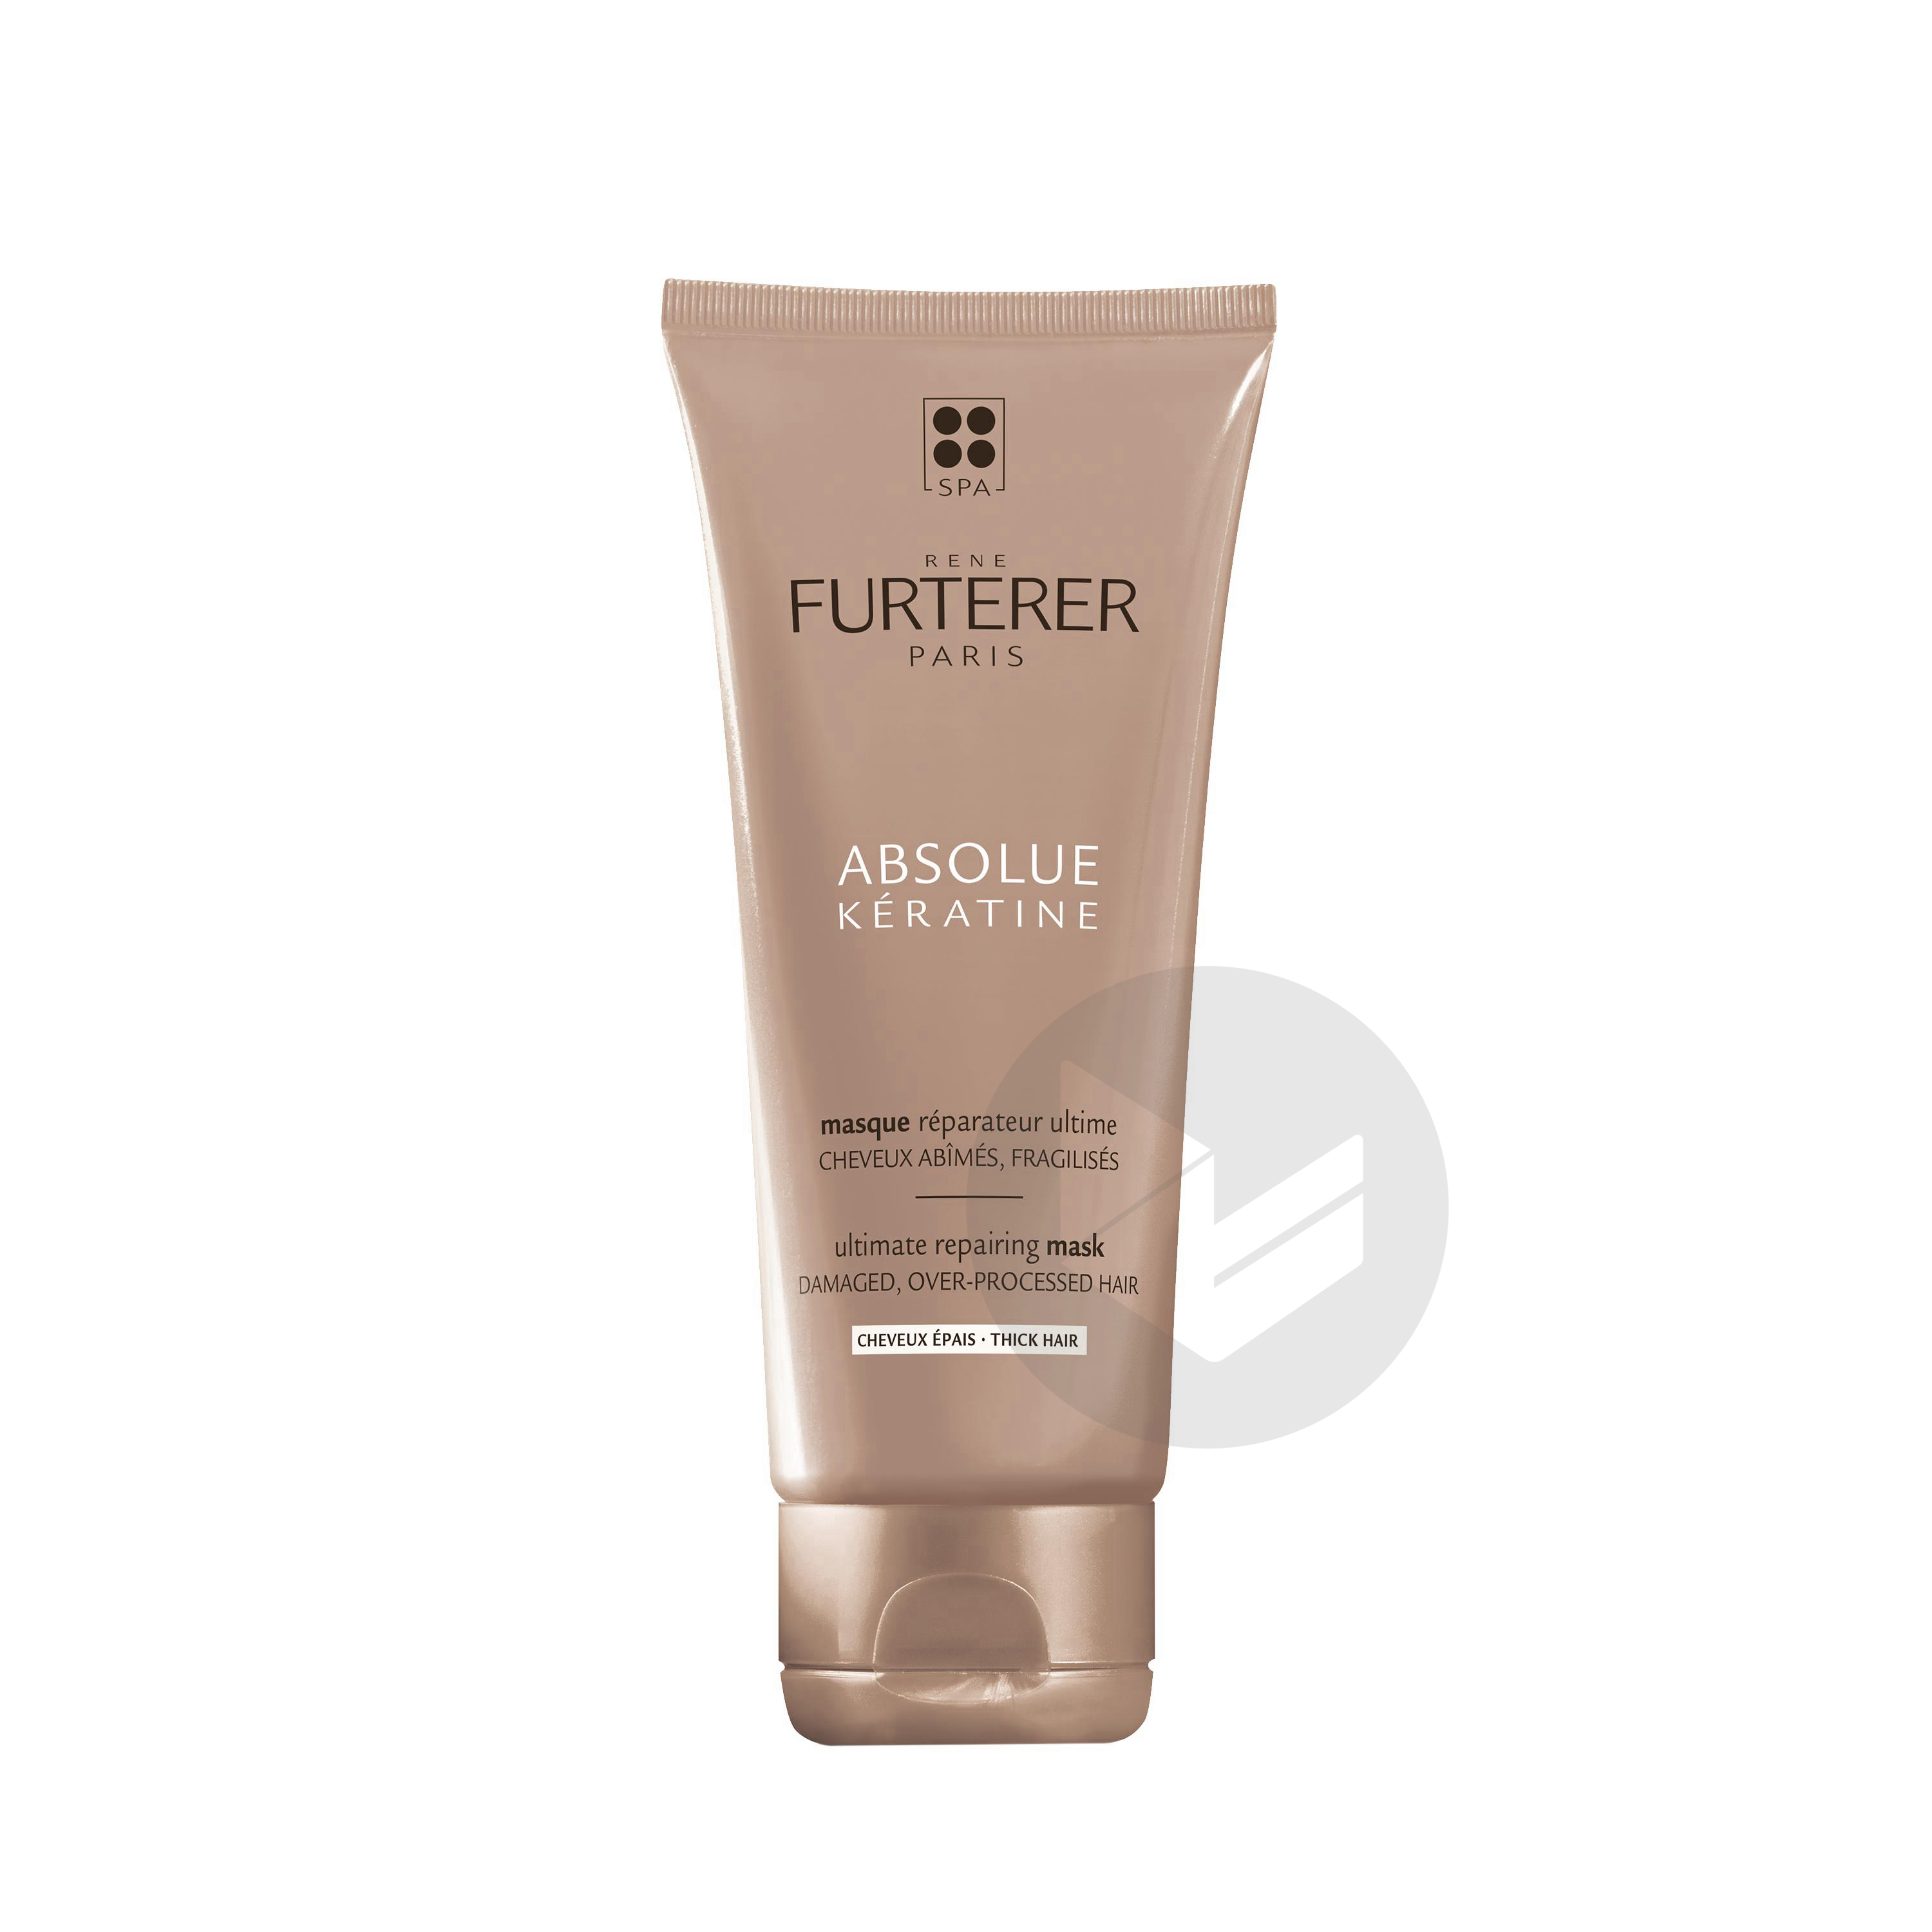 Rene Furterer Absolue Keratine Masque Reparateur Ultime Cheveux Epais 100 Ml